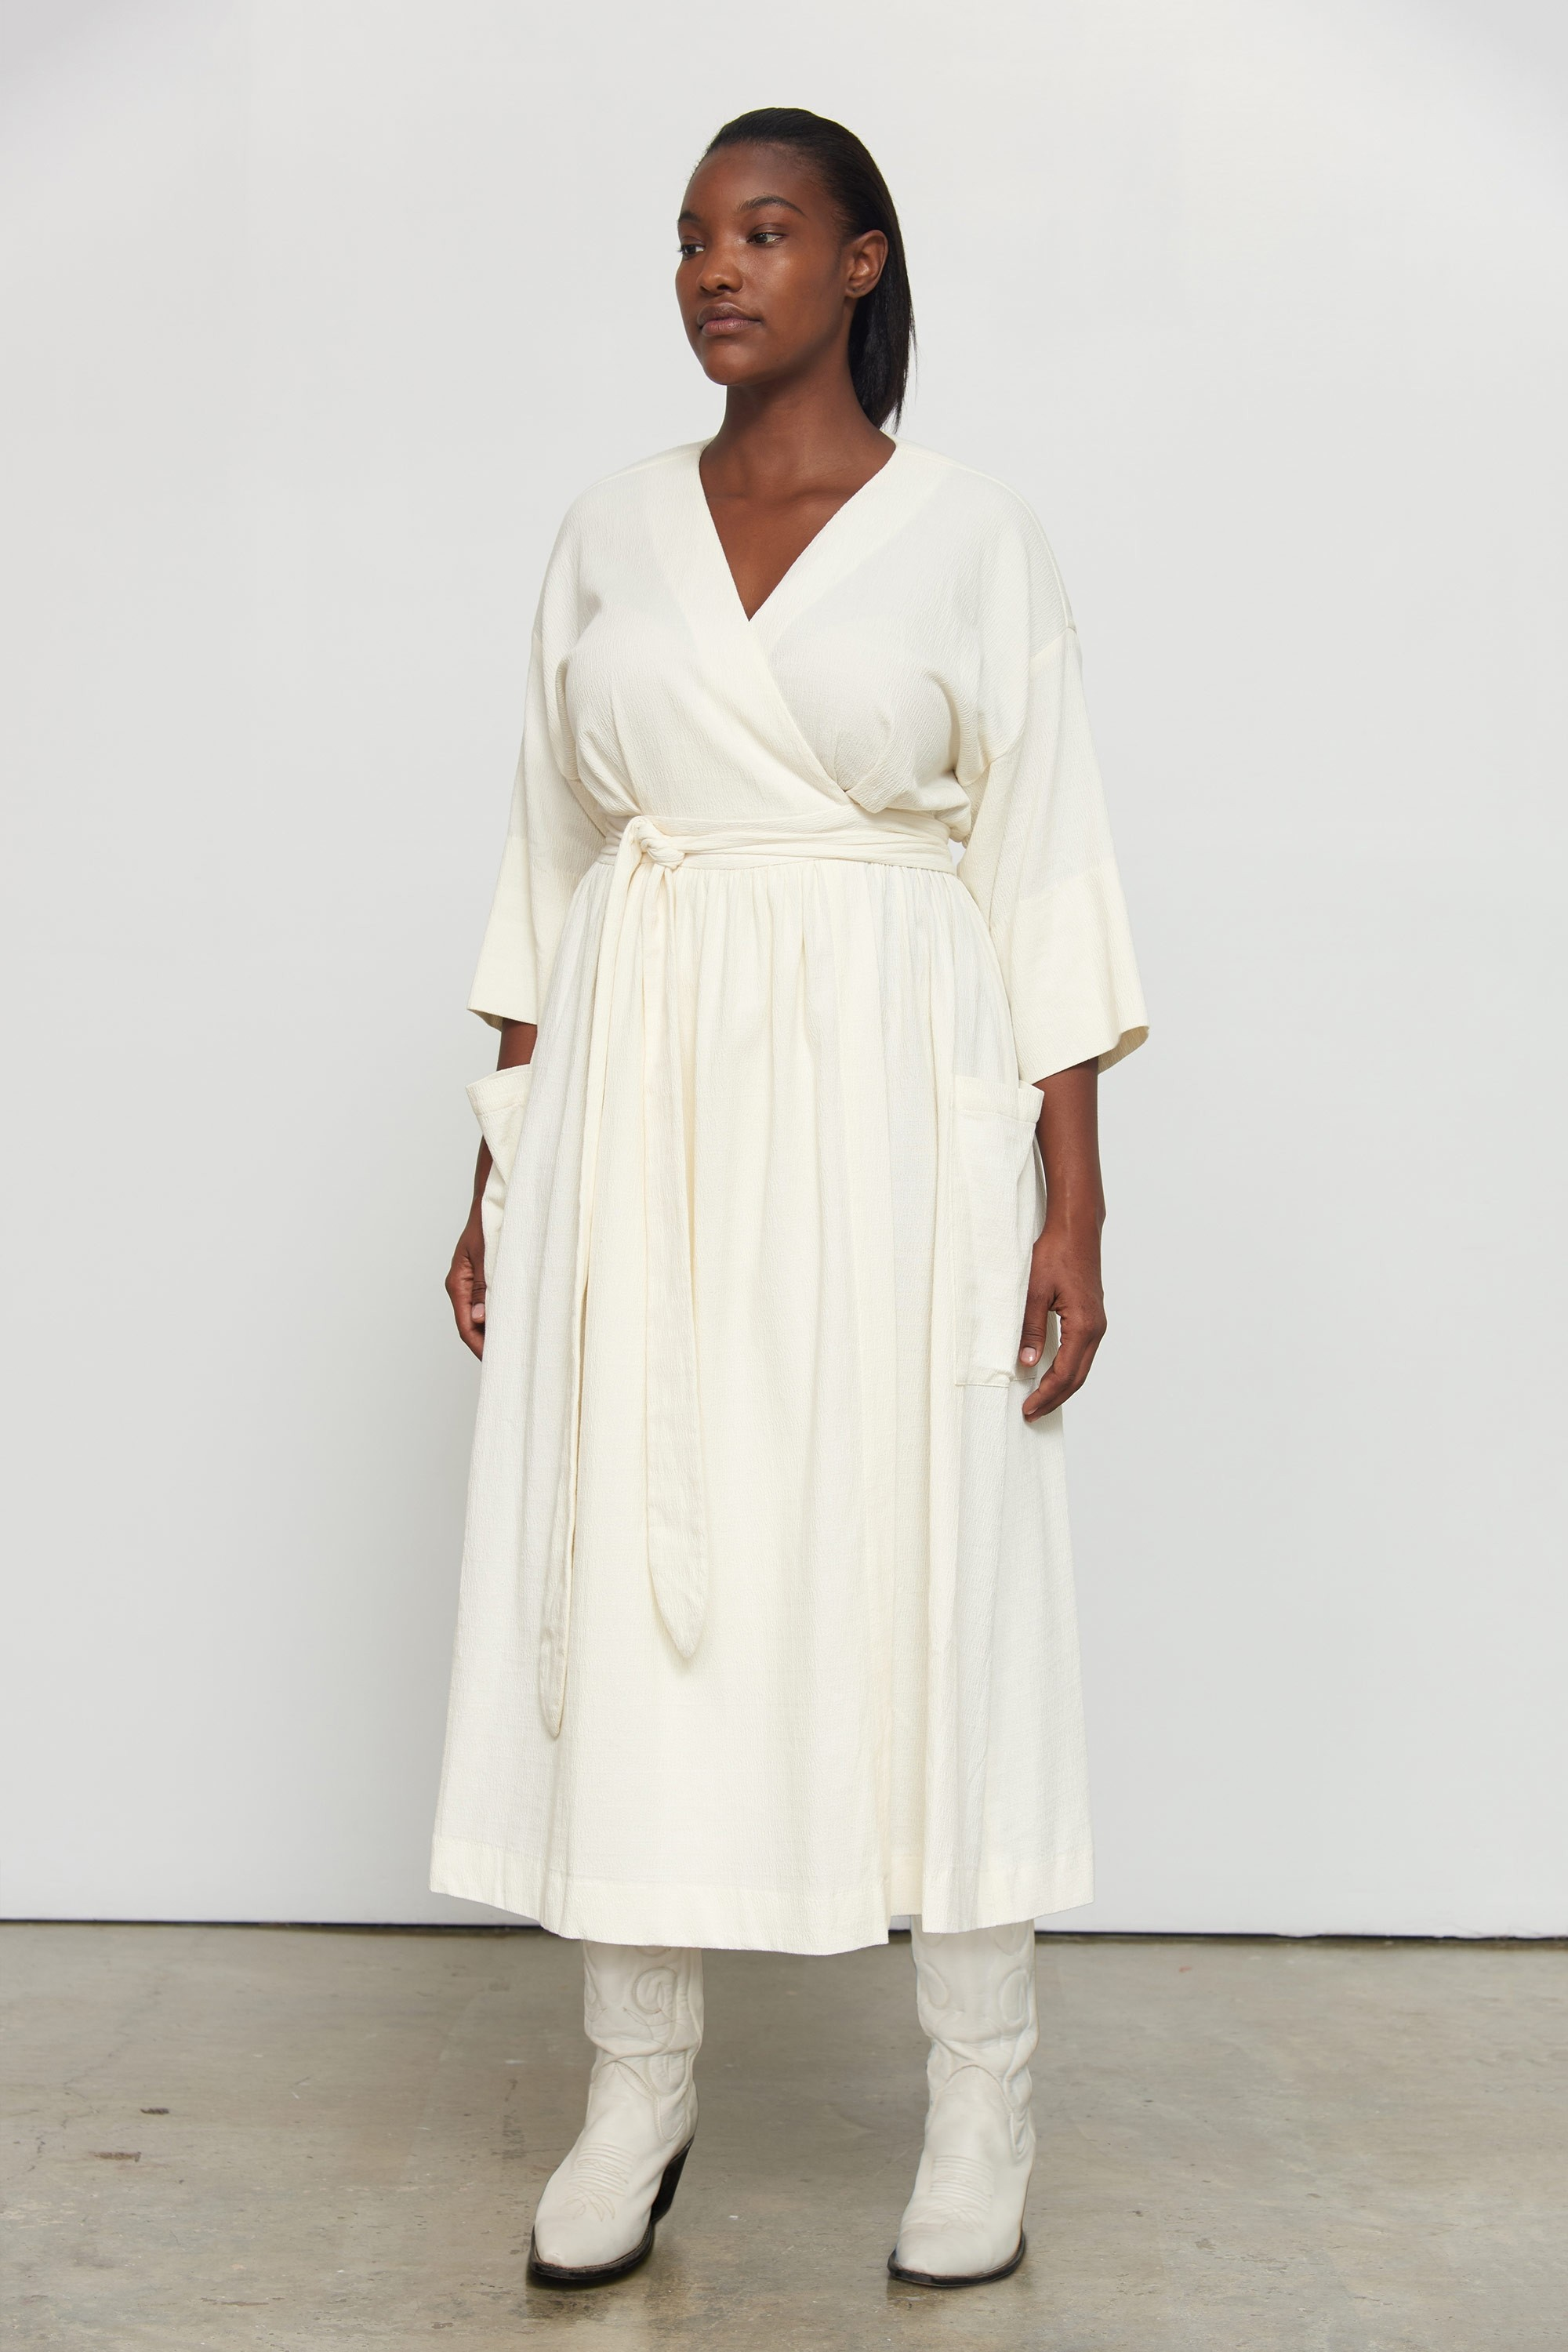 a2b9dad2982 Plus Size Party Dresses For Holiday Events, Winter 2019